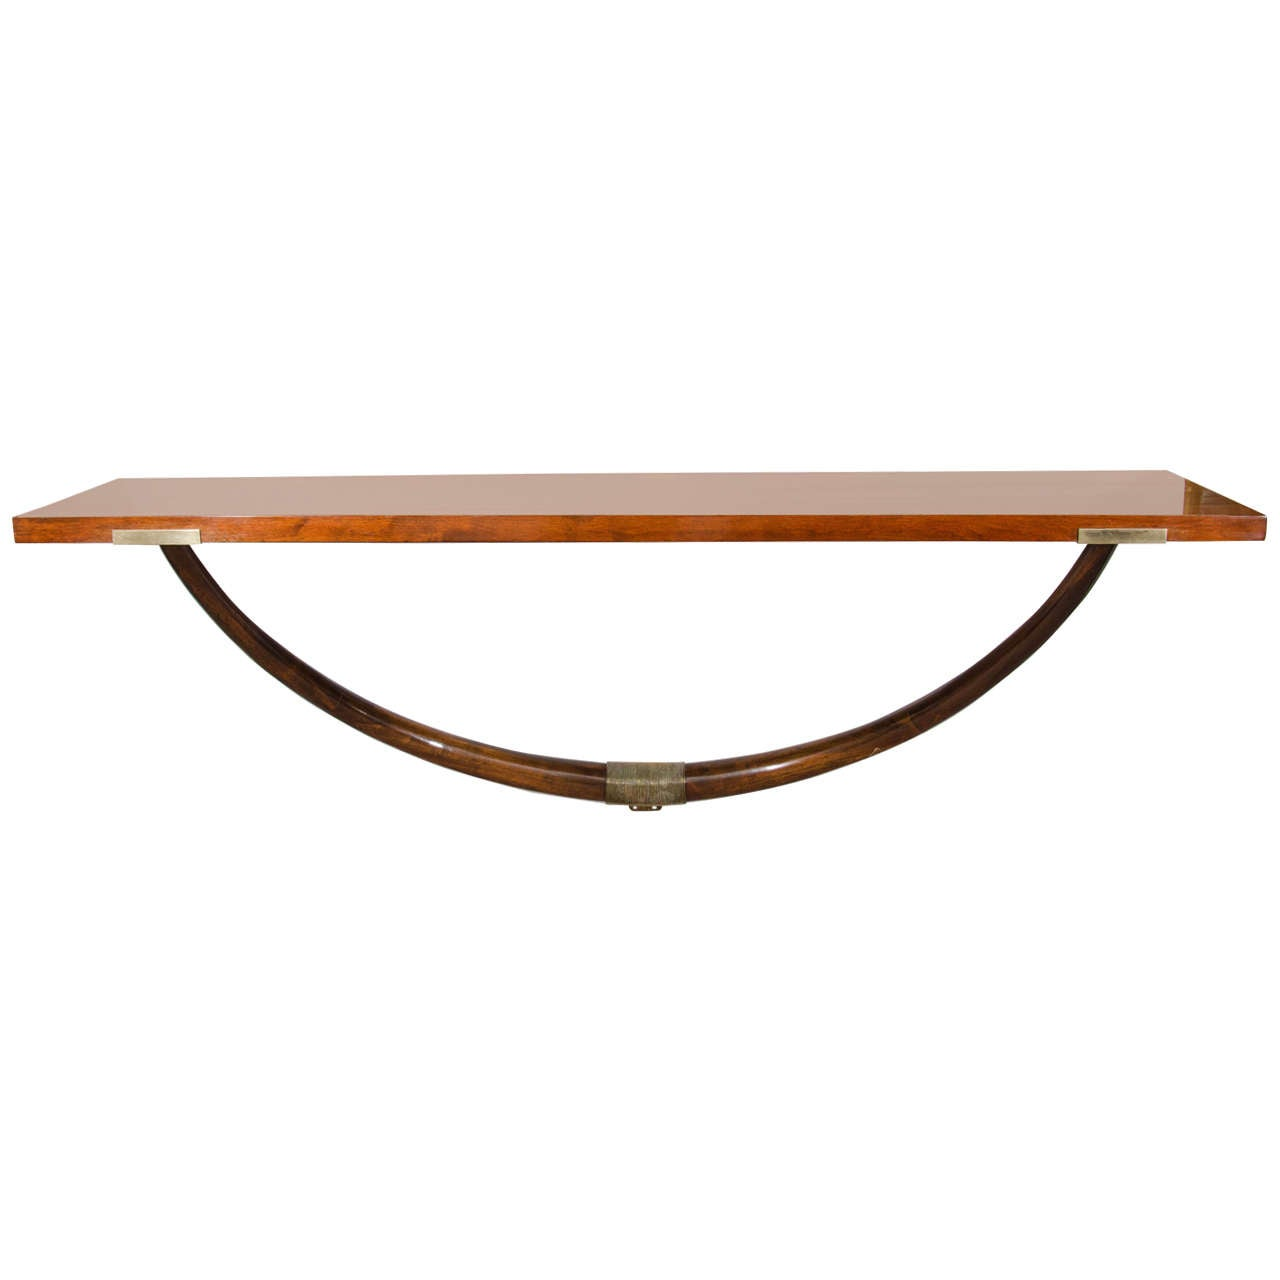 A Midcentury Maurice Bailey for Monteverdi Young Wall Mounted Console Table